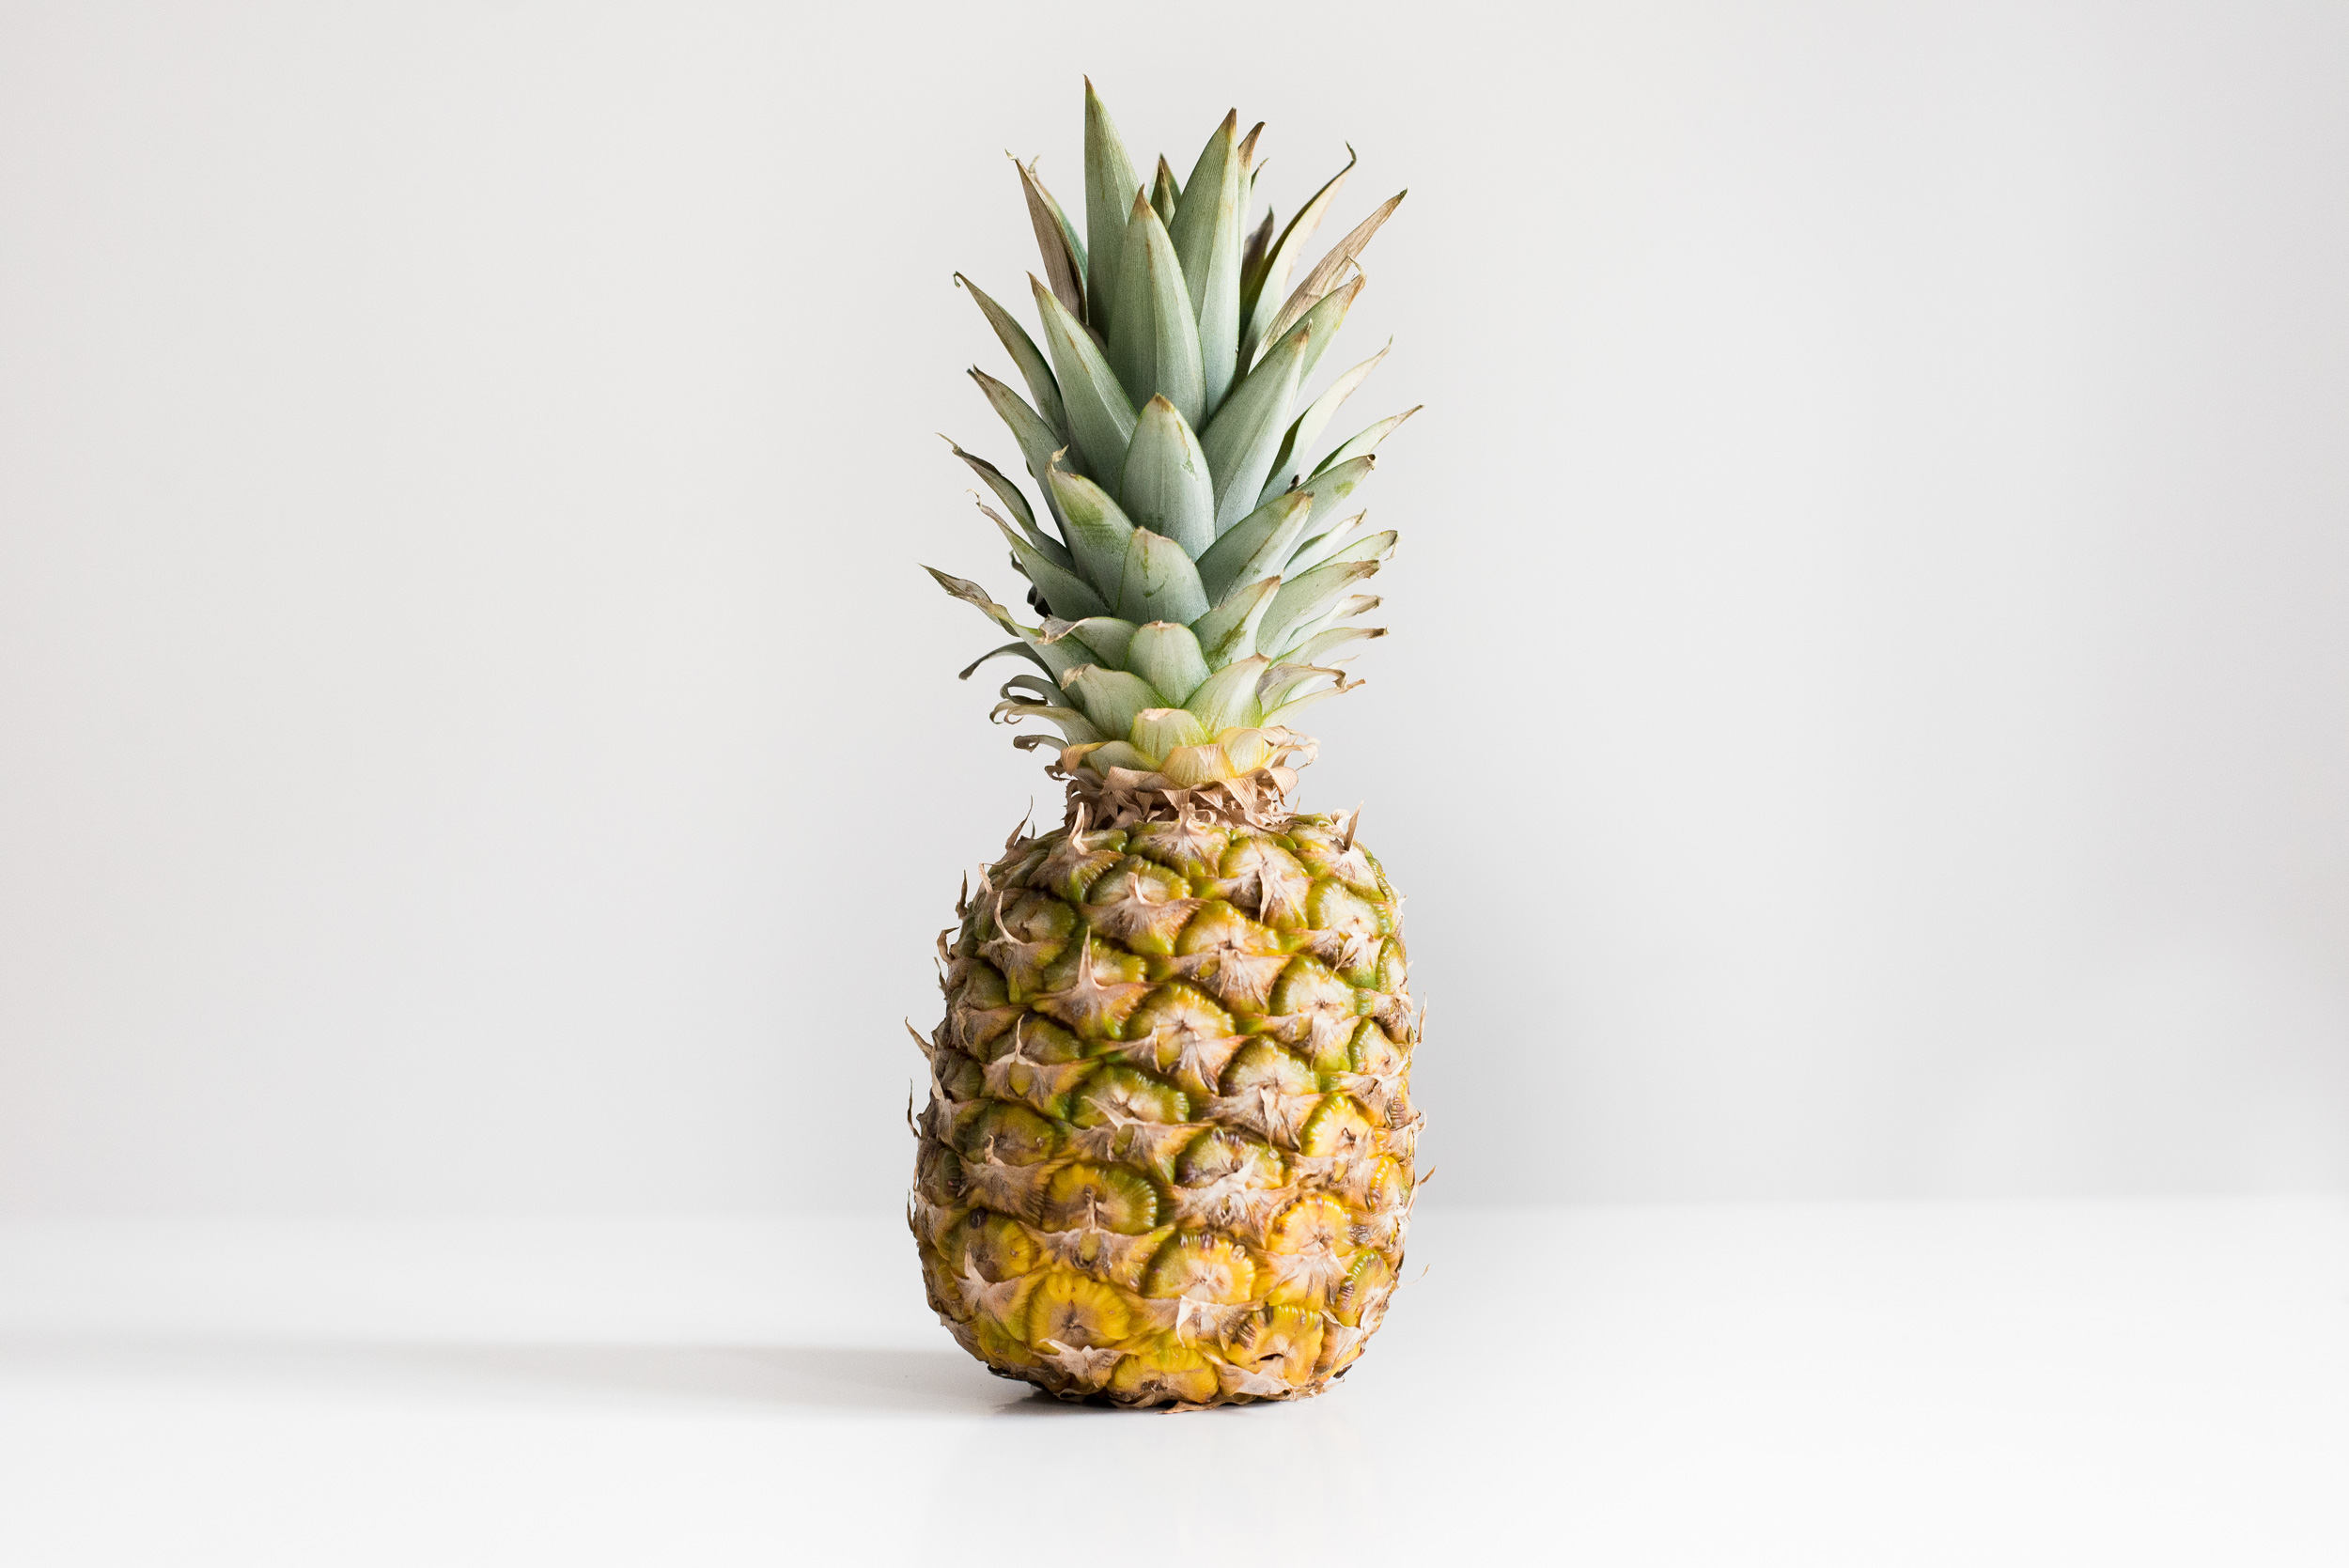 Cute Wallpaper Pictures Free Download Best 20 Pineapple Pictures Download Free Images On Unsplash